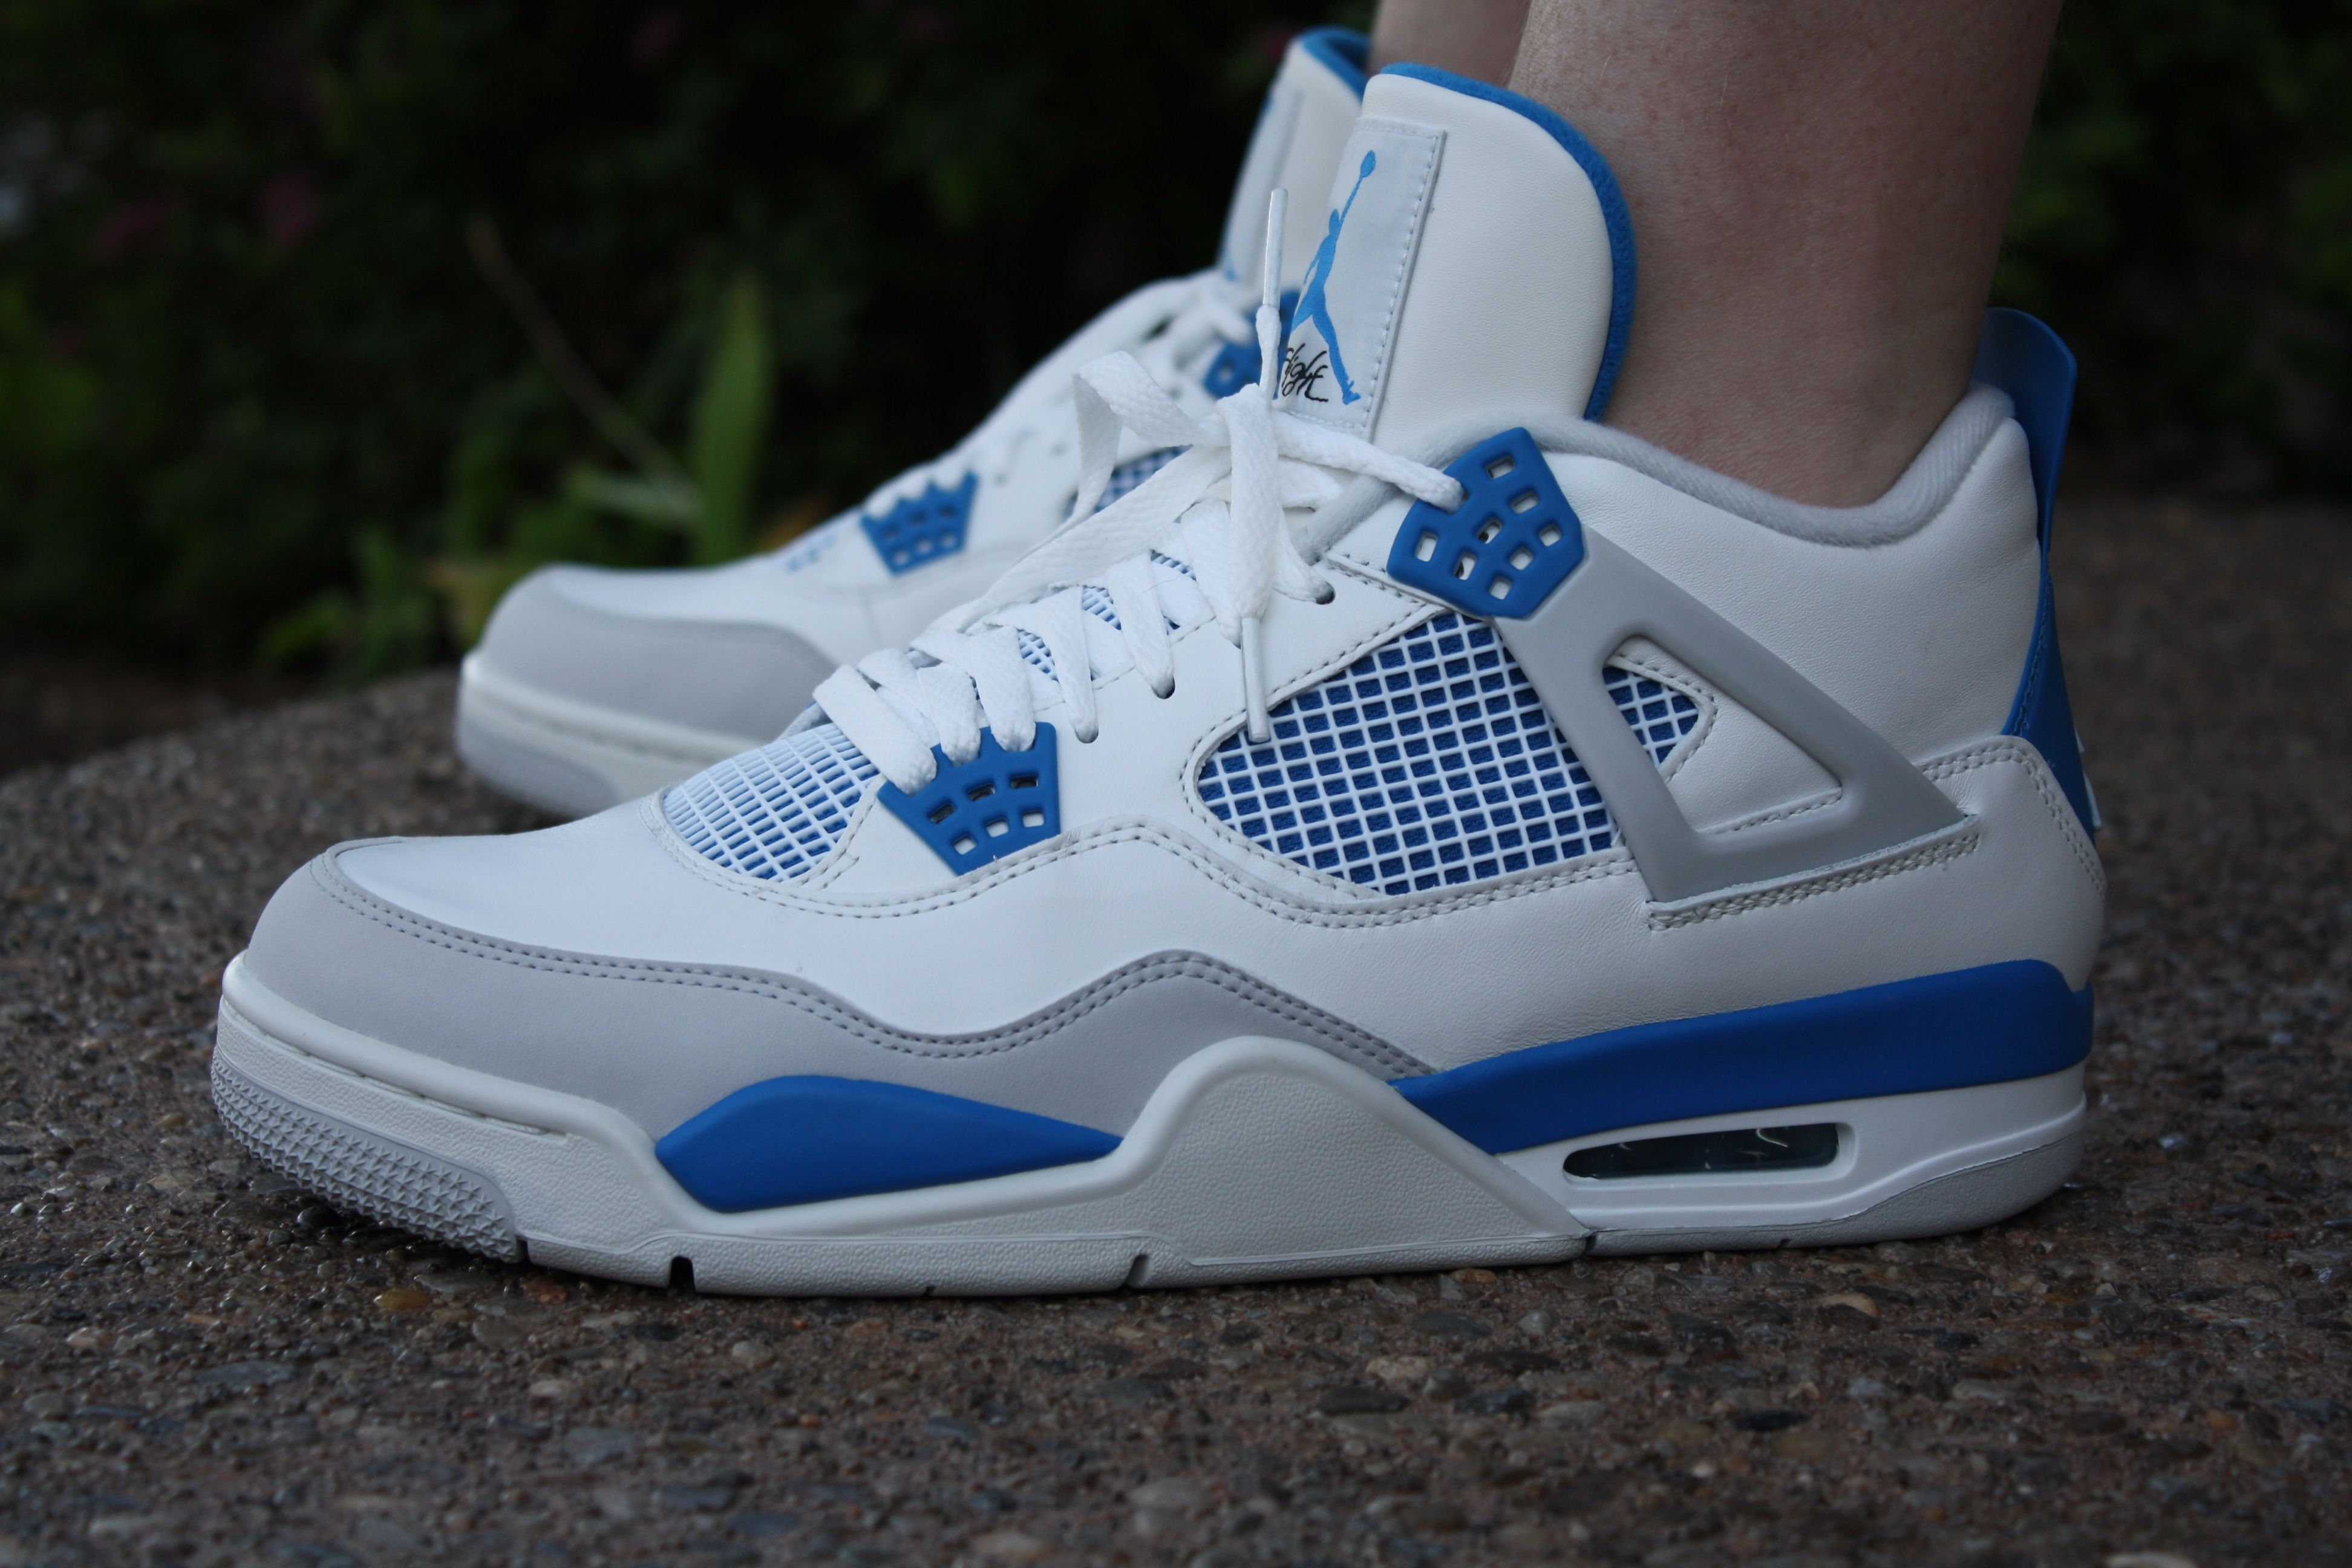 c77bd9aa1e43 First time in Js. Jordan 4s Military